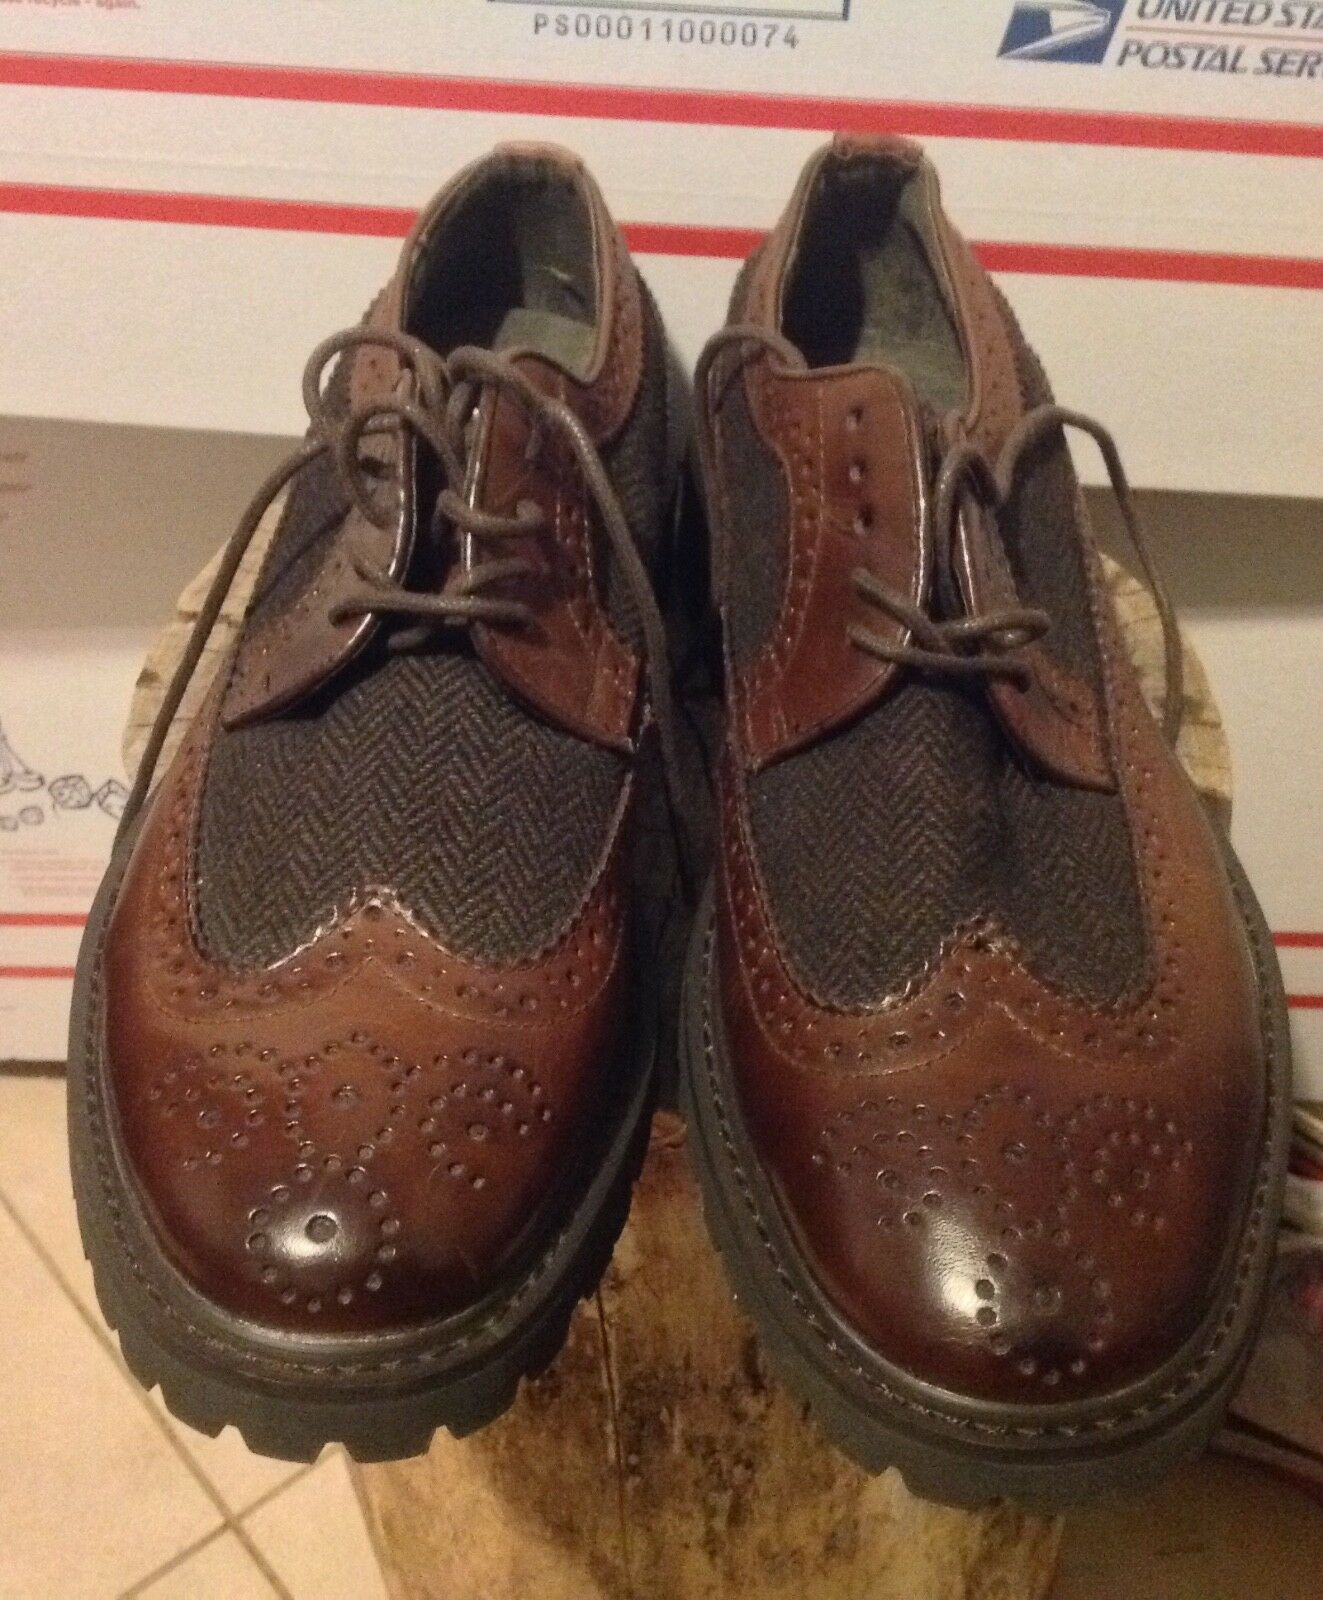 Joseph Abboud Men's Brown Wing tip leather lace-up Shoes Size 10D